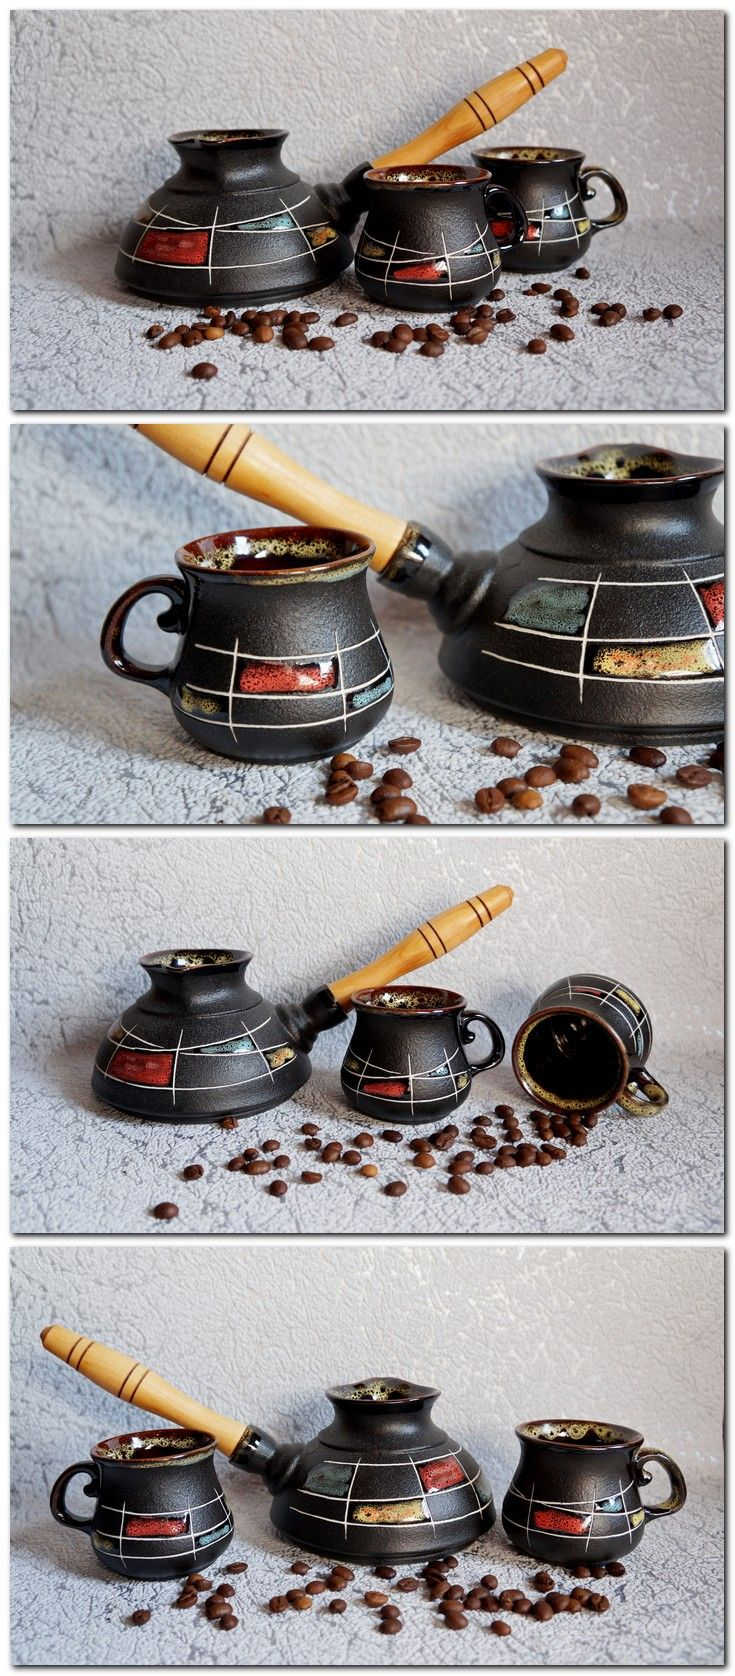 #ceramic_turkish_coffee_set #two_small_coffee_cups #handpainted_pottery